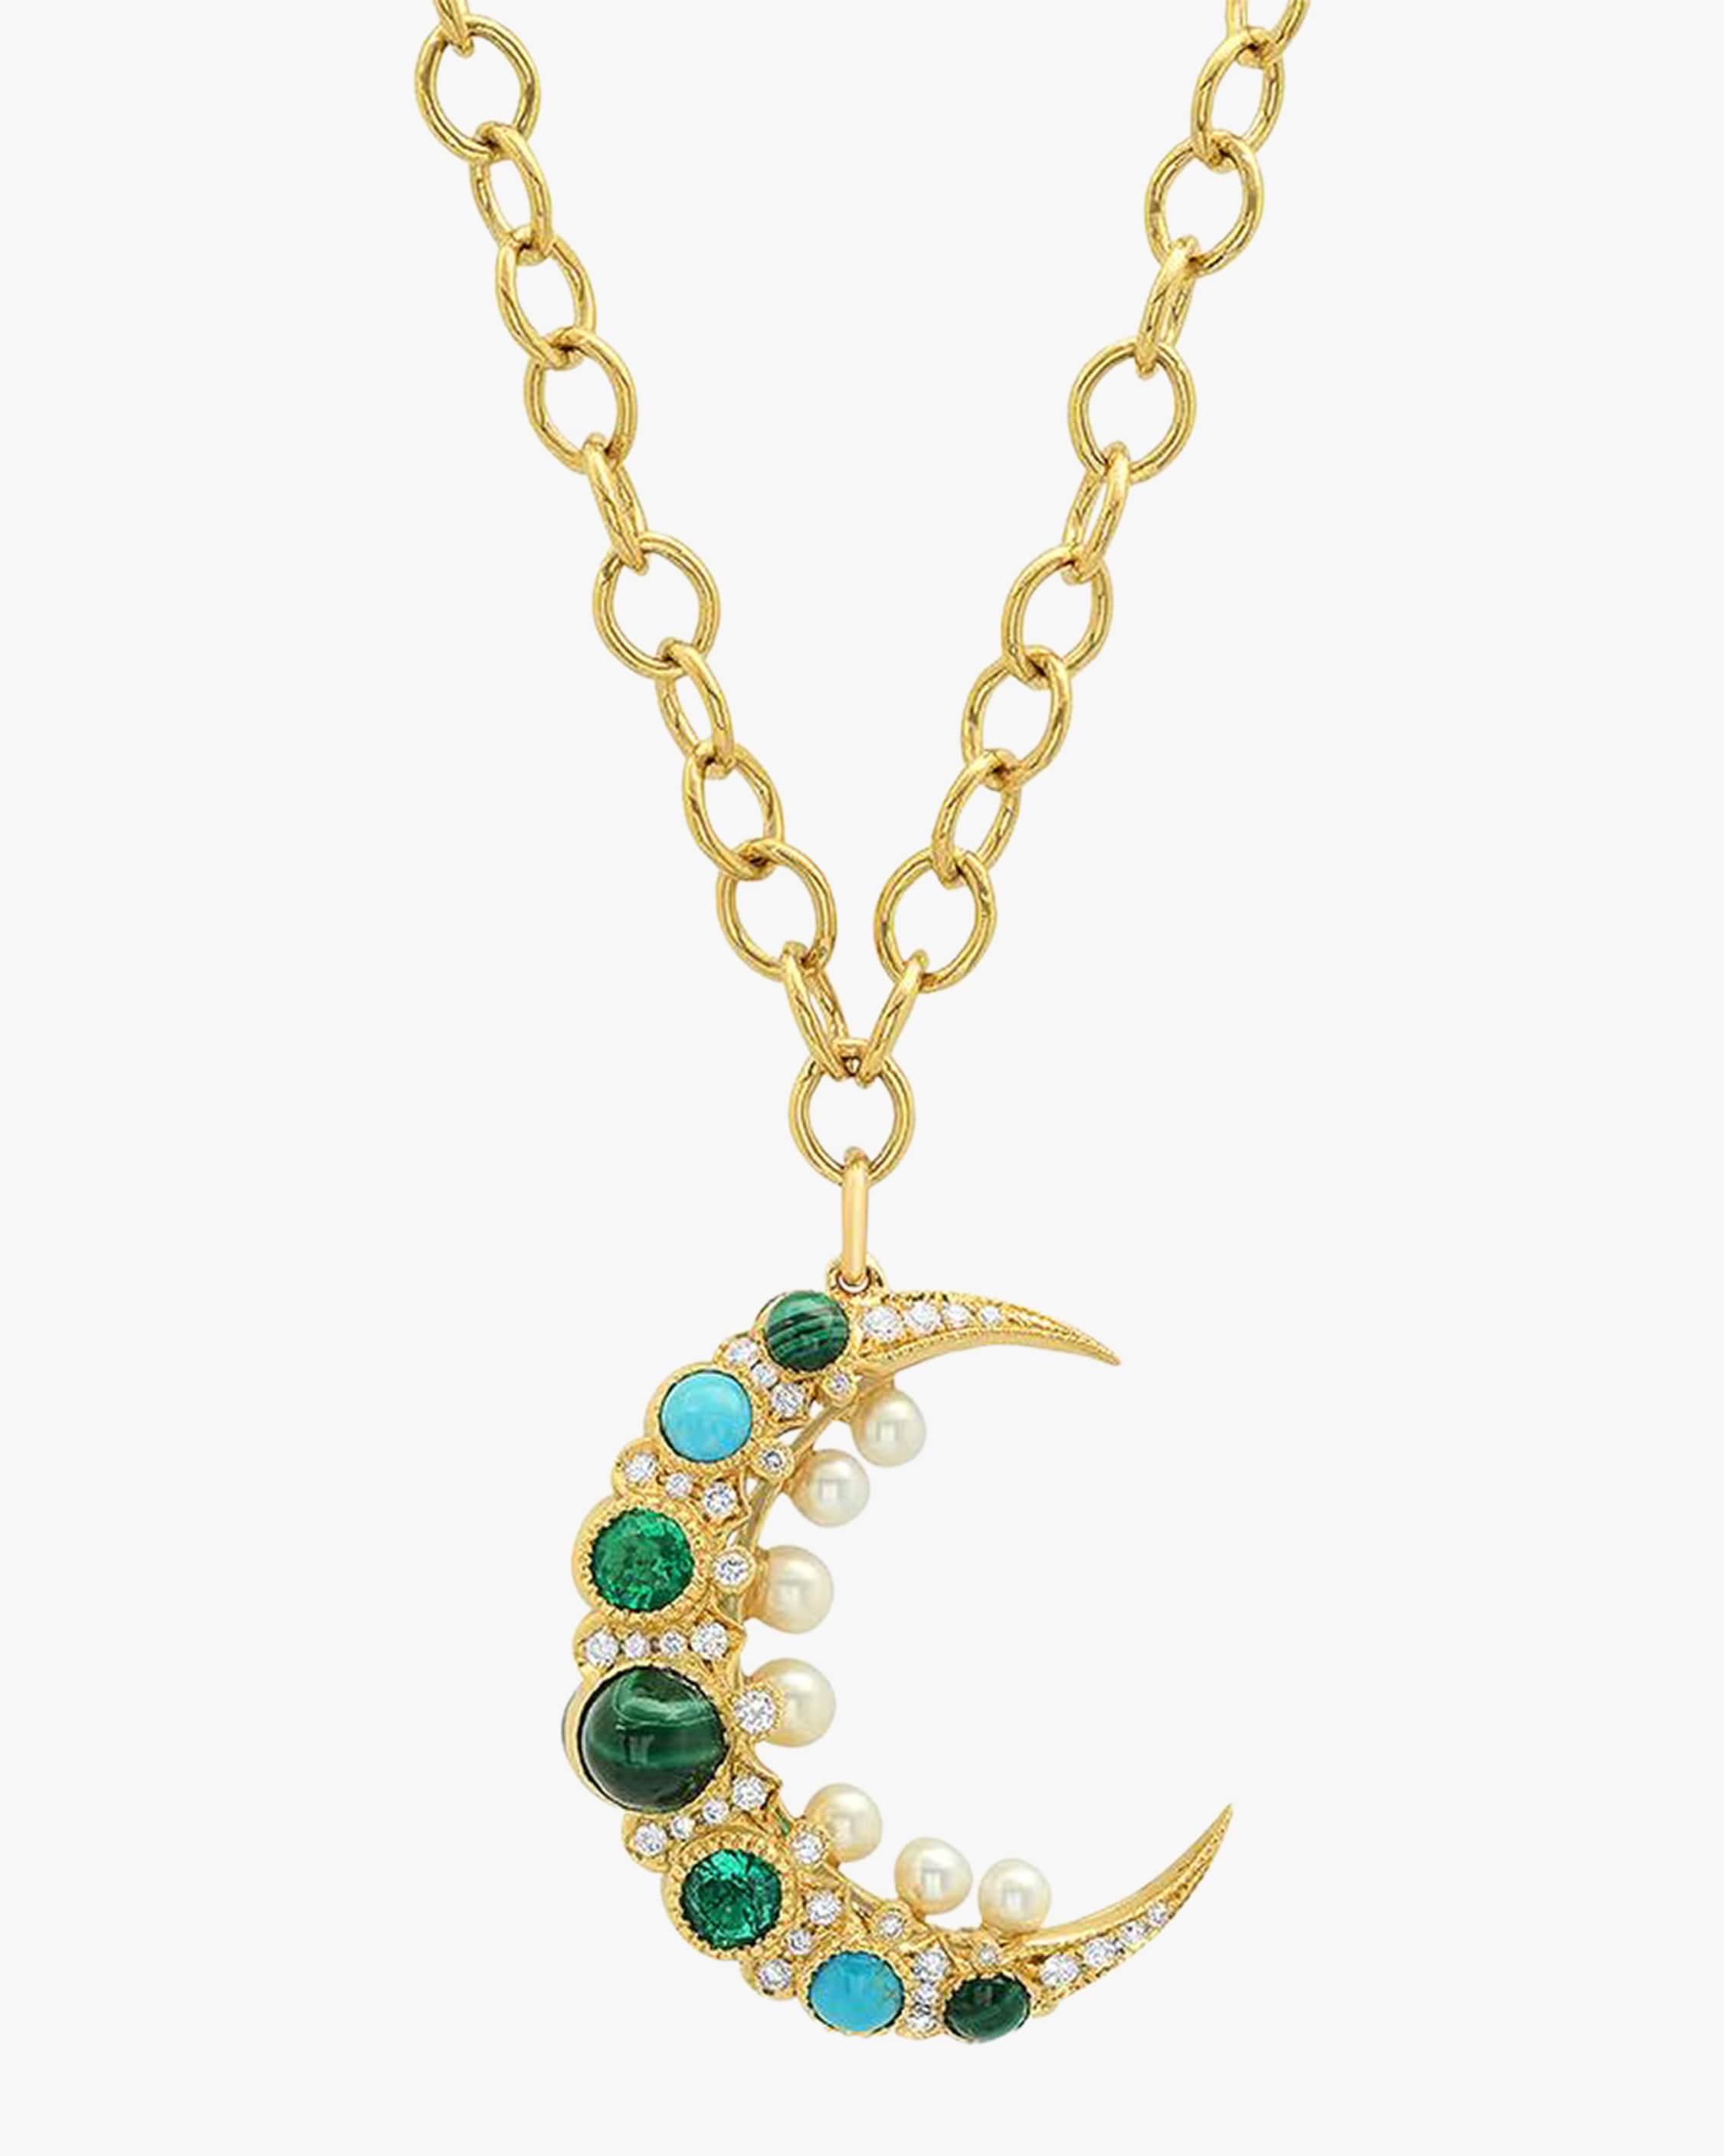 Colette Jewelry Cosmo Mooncage Necklace 1